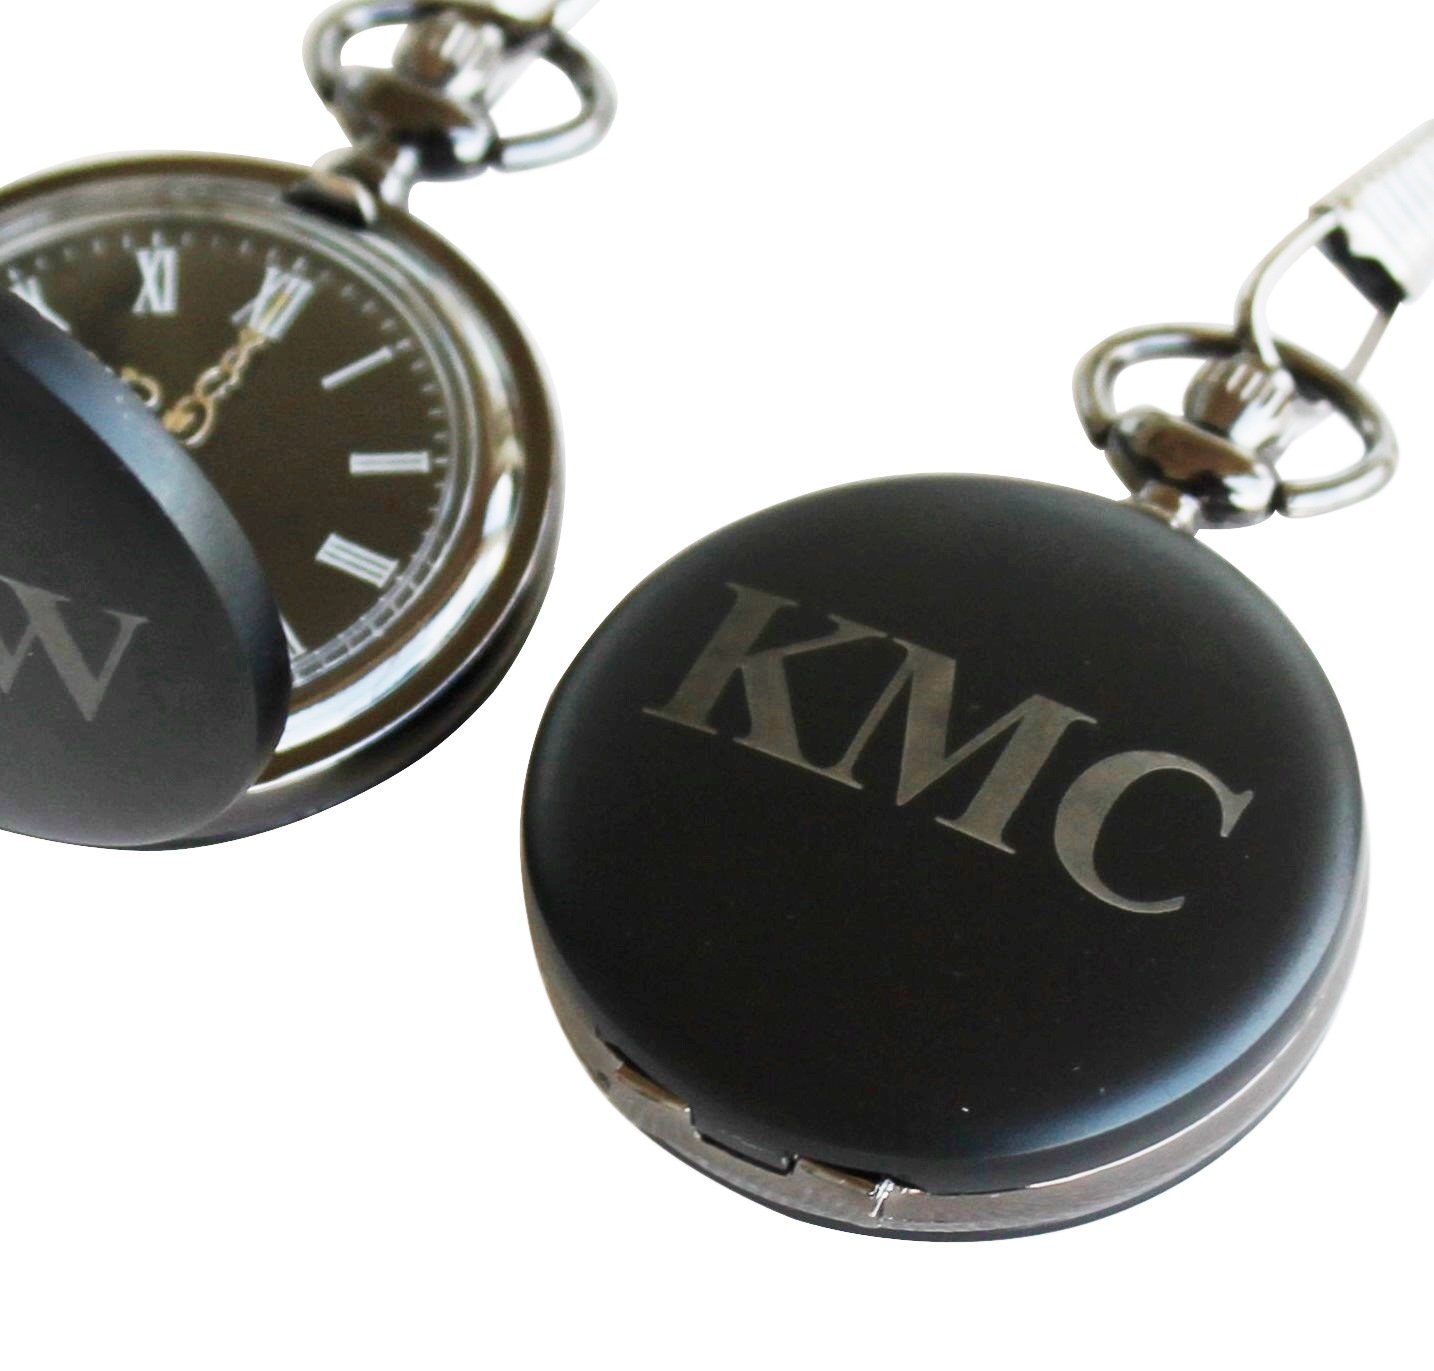 Personalized Black Matte Quartz Pocket Watch with Chain - Groomsmen Wedding Party Gifts - Engraved for Free